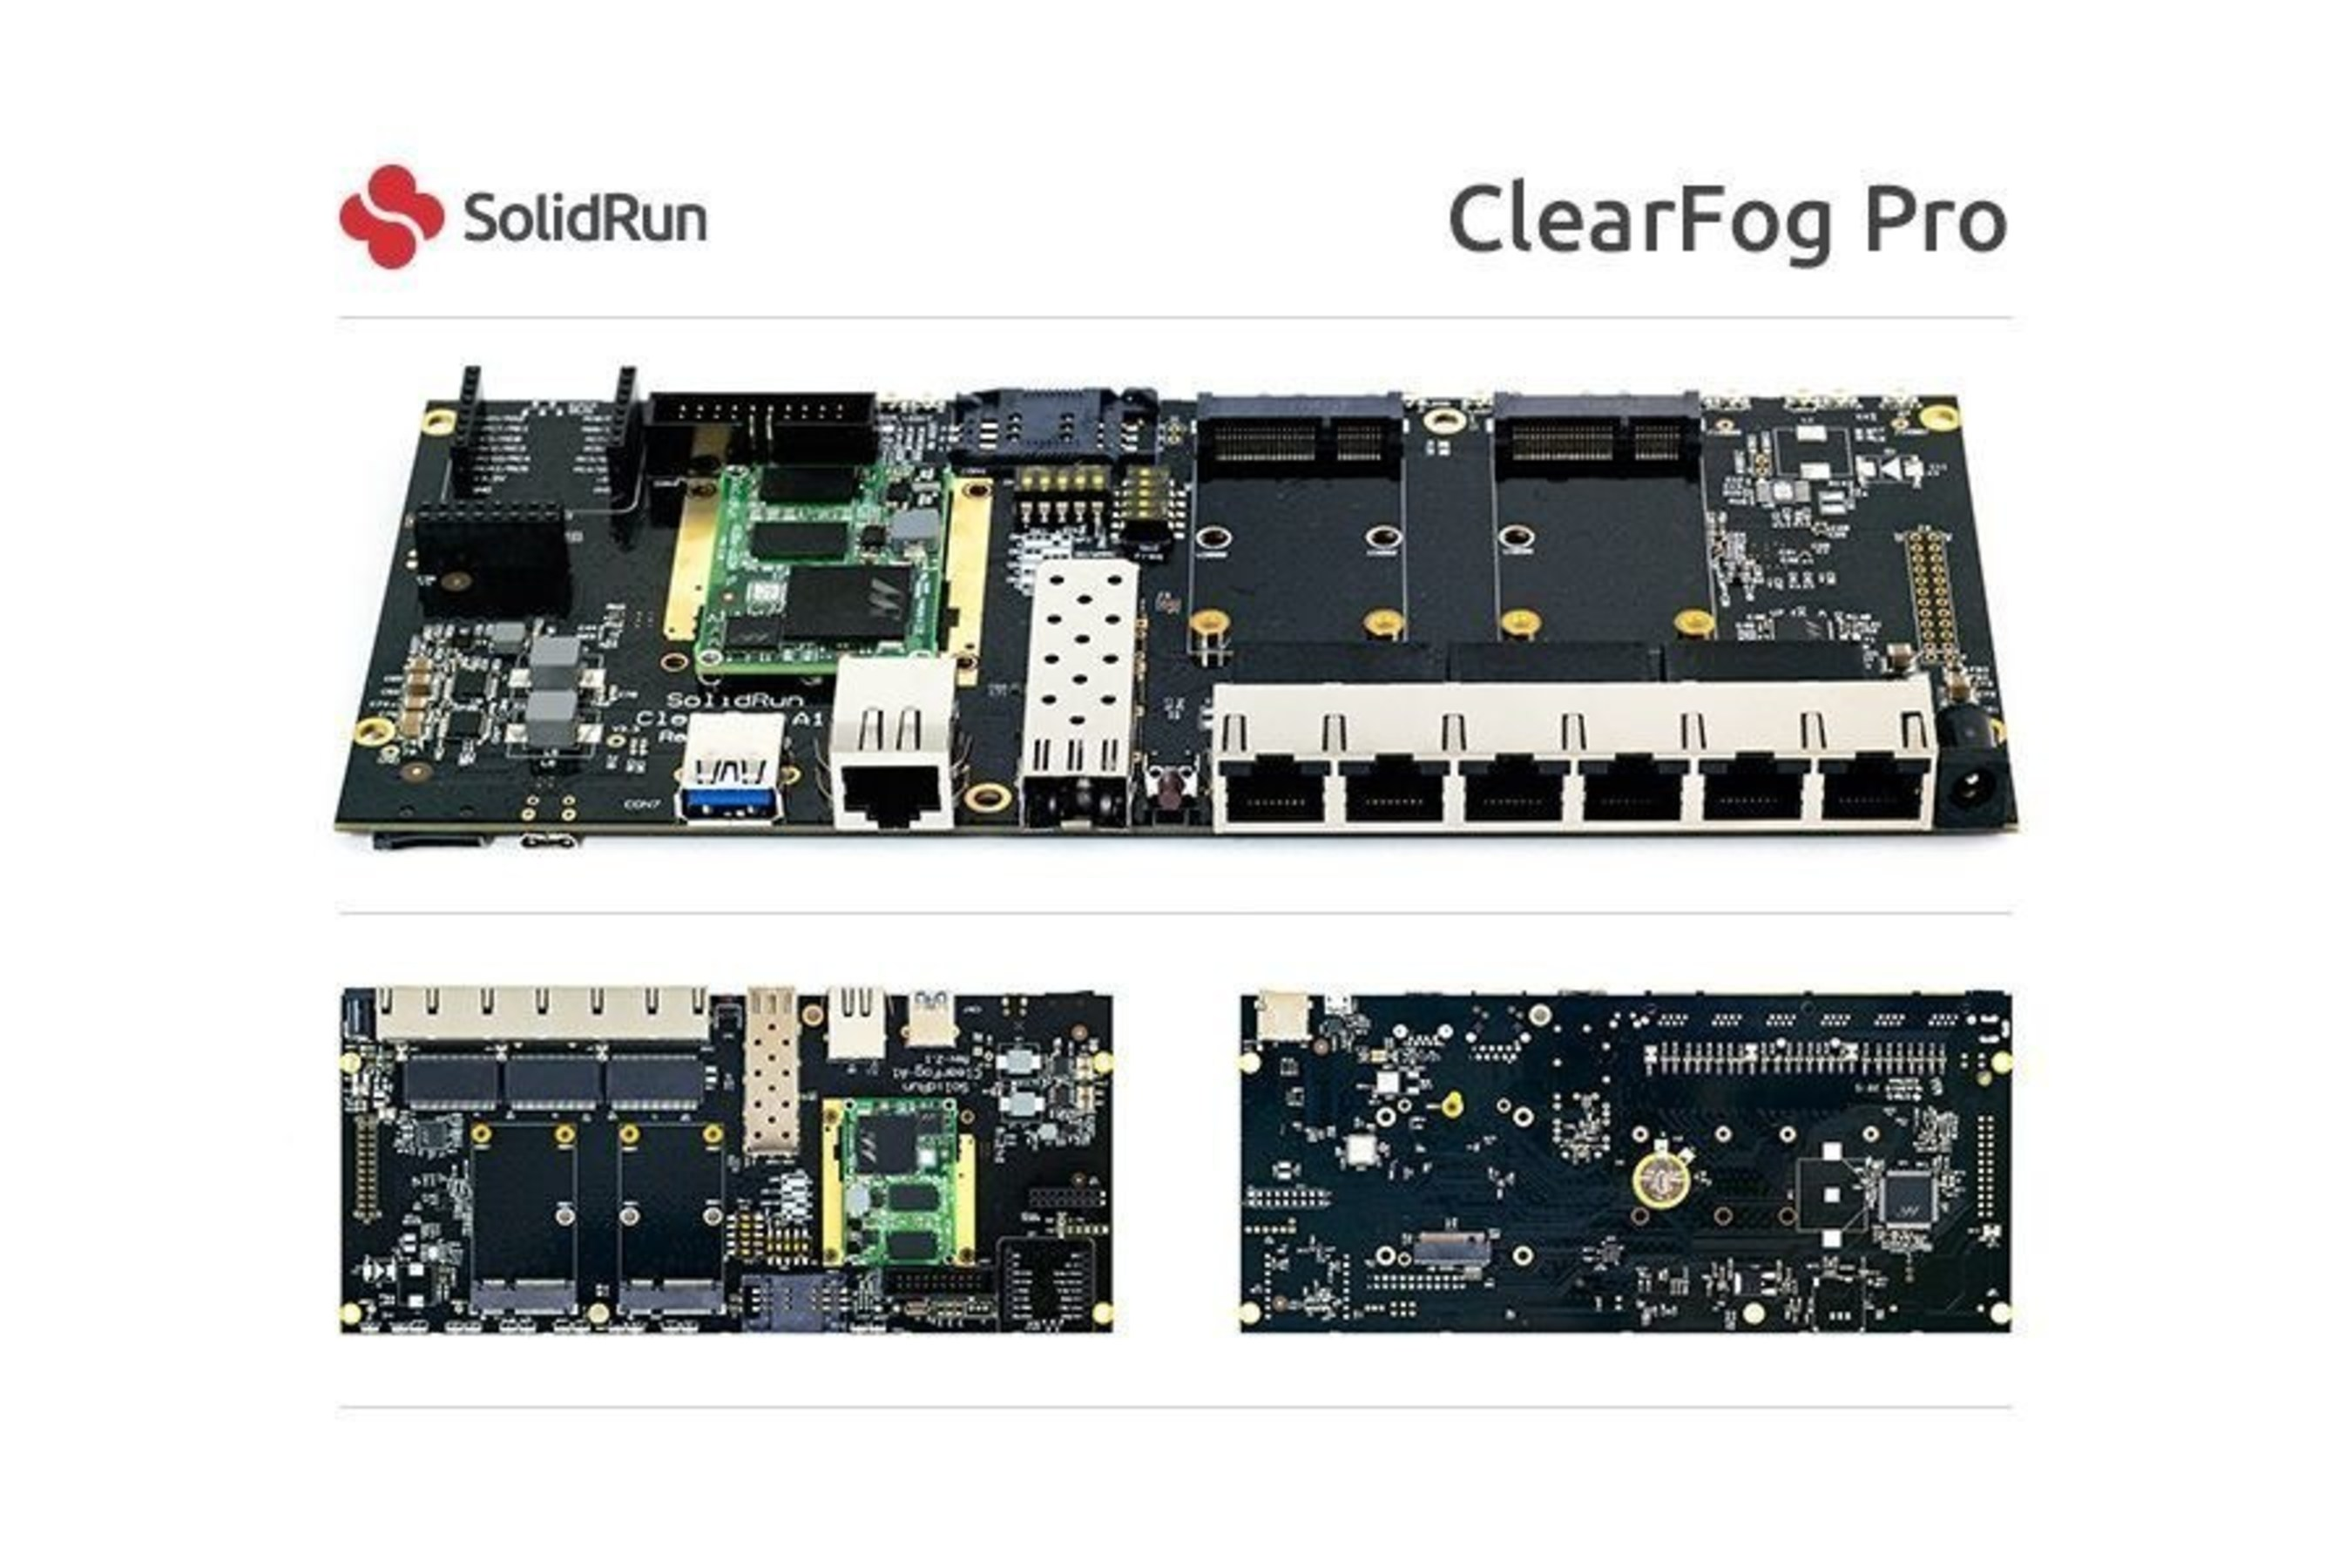 SolidRun Announces ClearFog: The First Open Development Kit Based on Marvell's New ARMADA 38x SoC